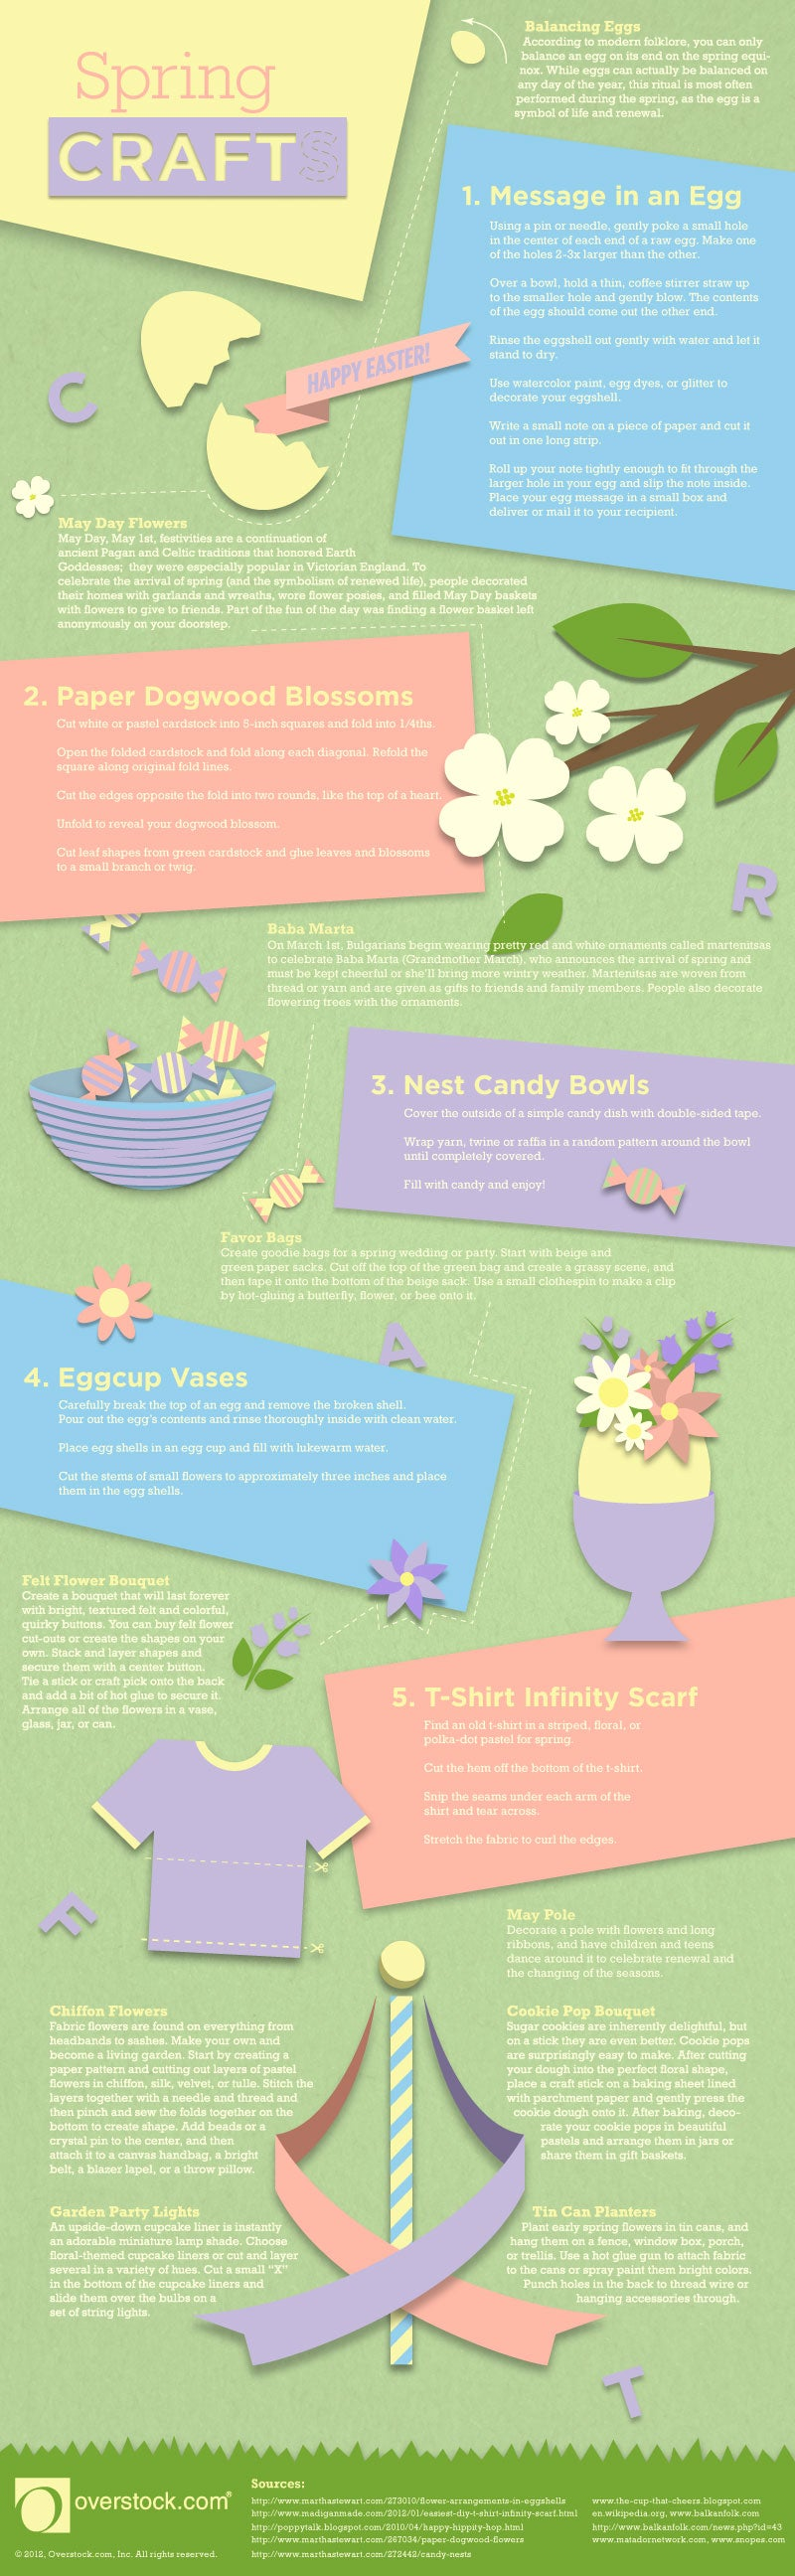 Spring Crafts Infographic from Overstock.com